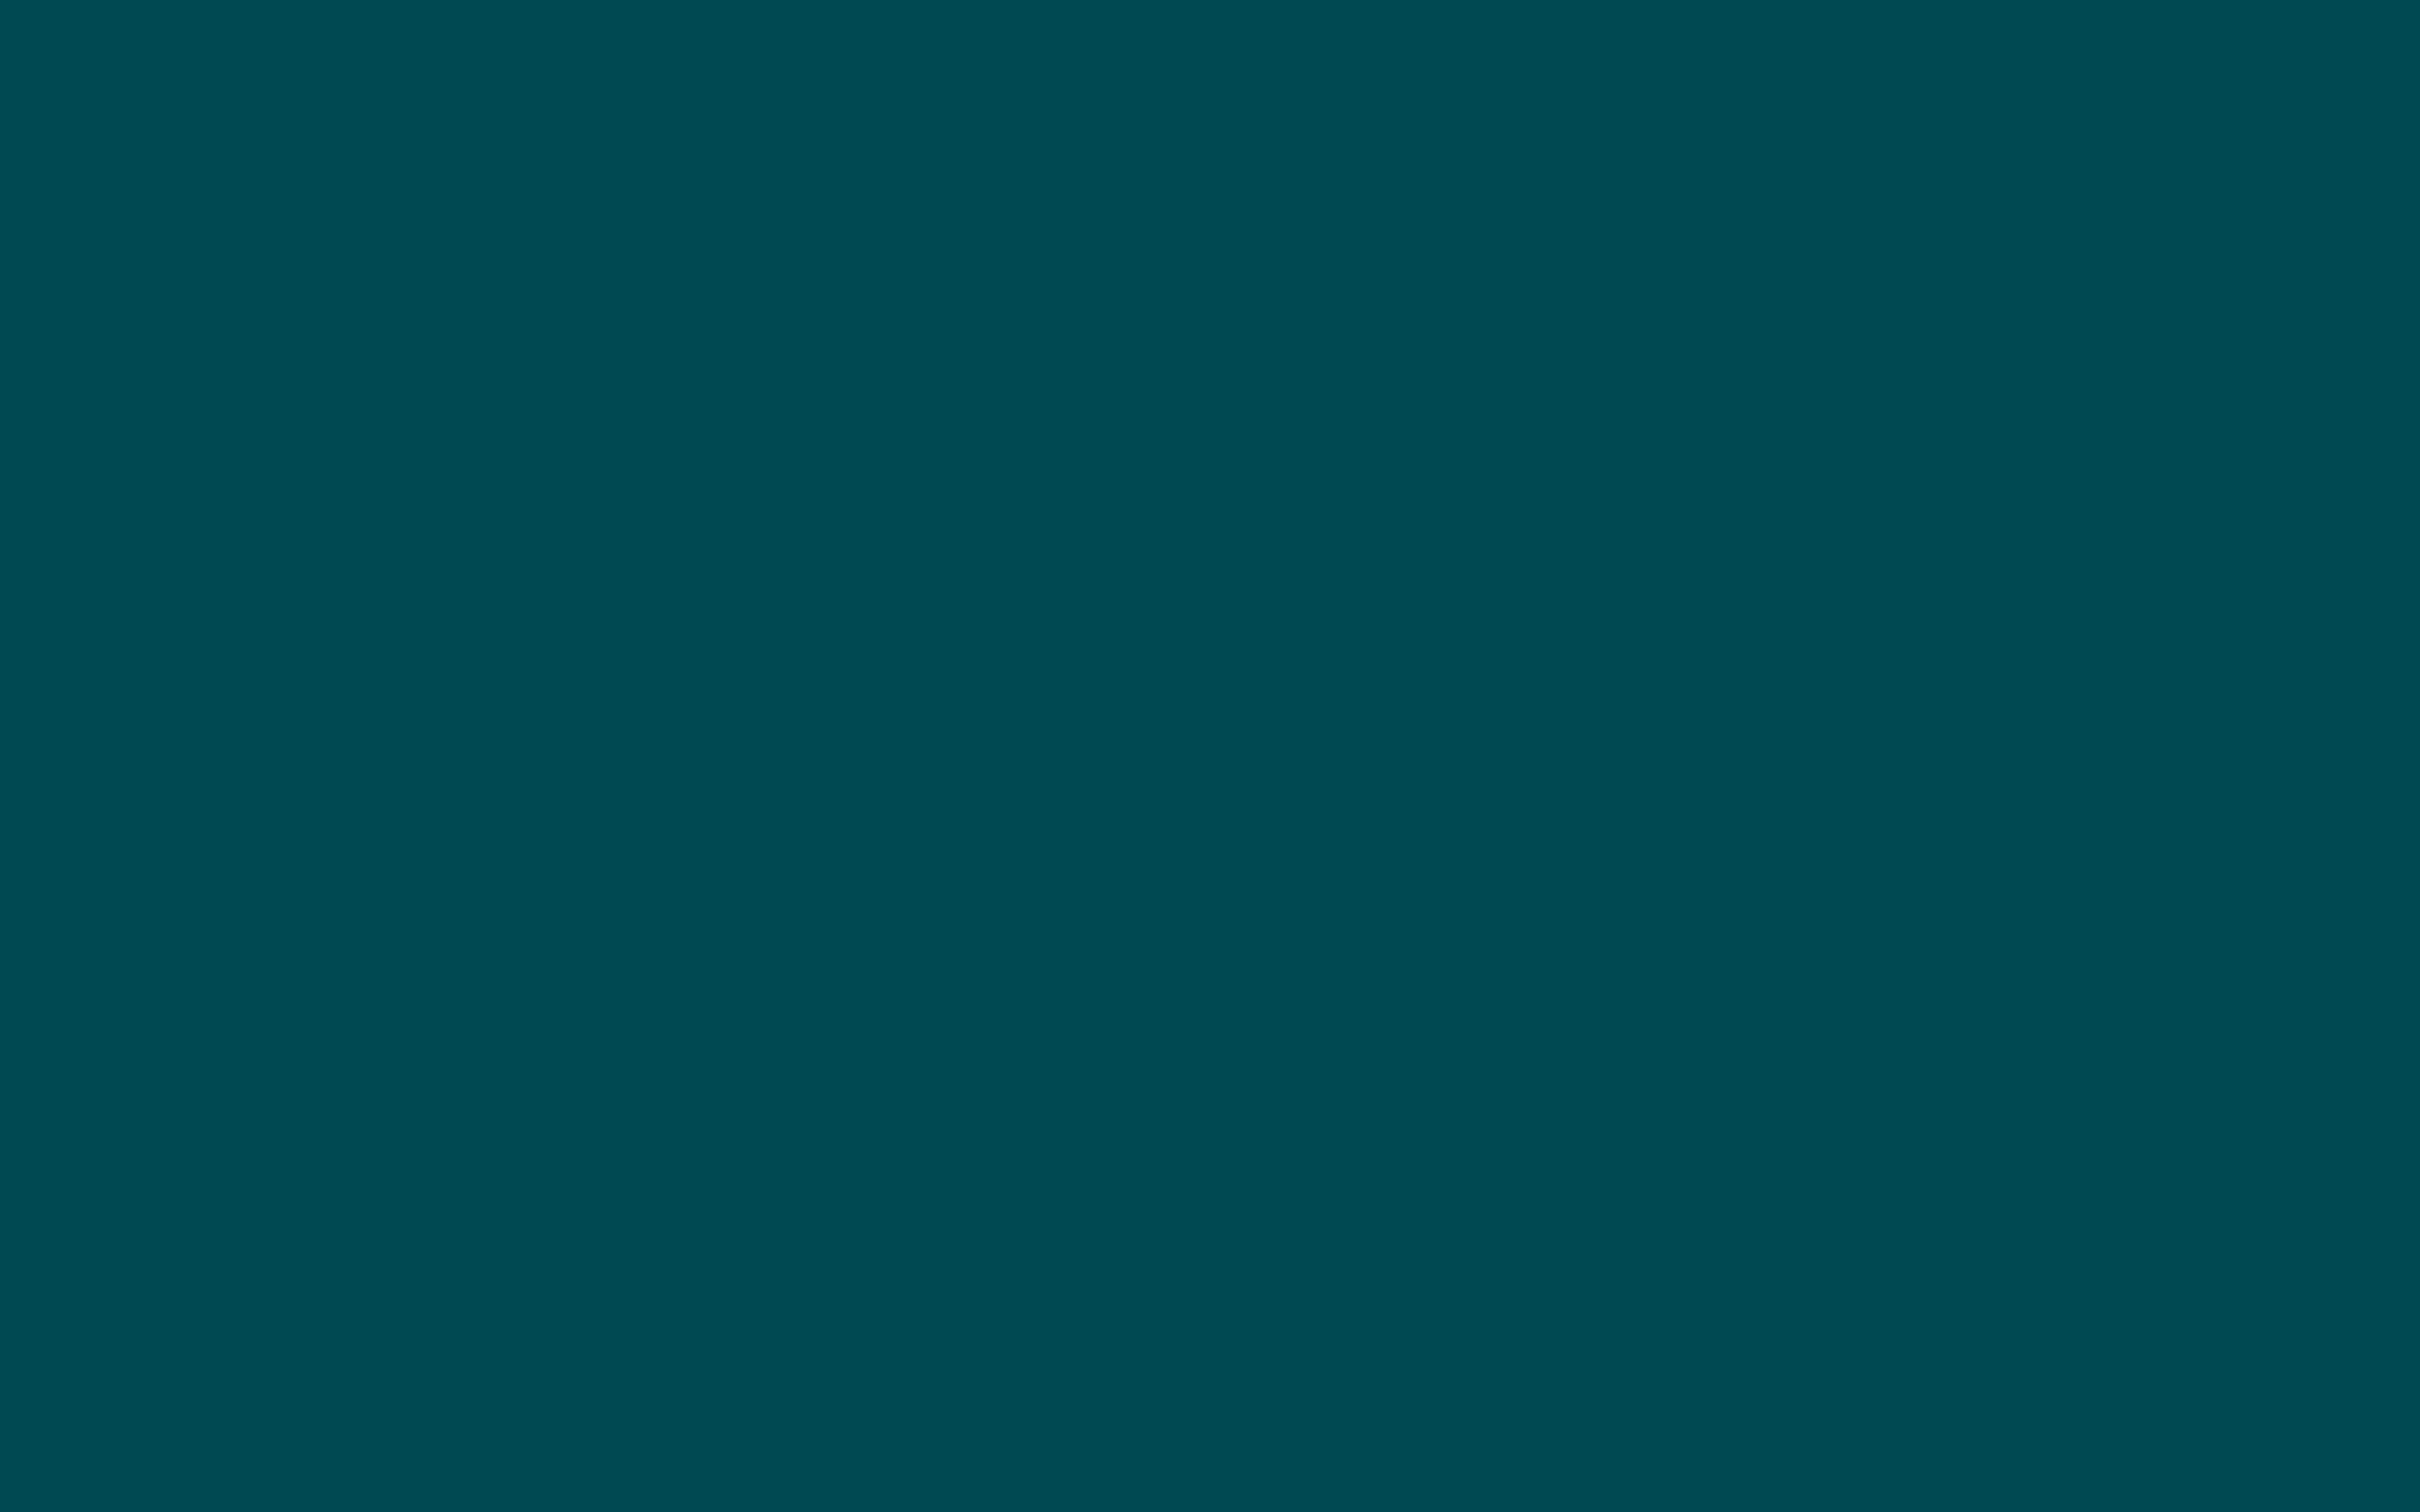 2560x1600 Midnight Green Solid Color Background